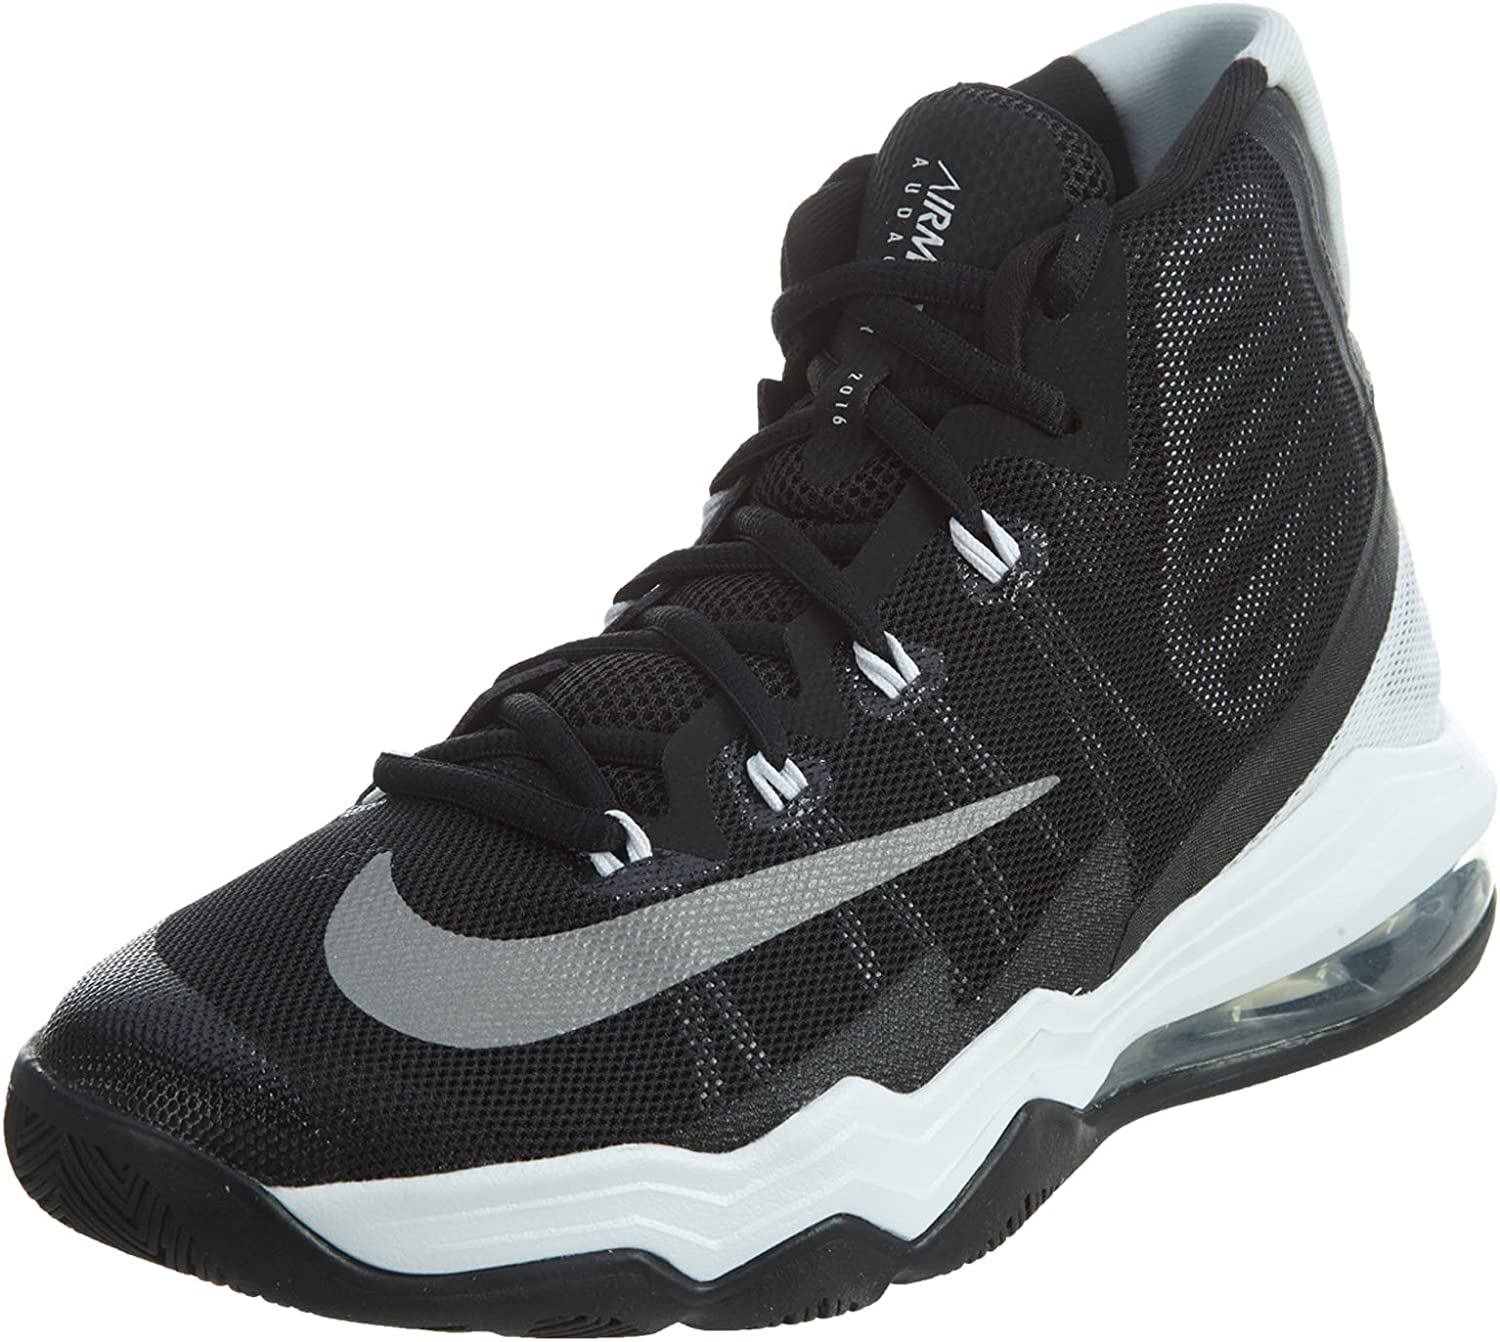 Nike Men's Air Max Audacity 2016 Basketball shoes